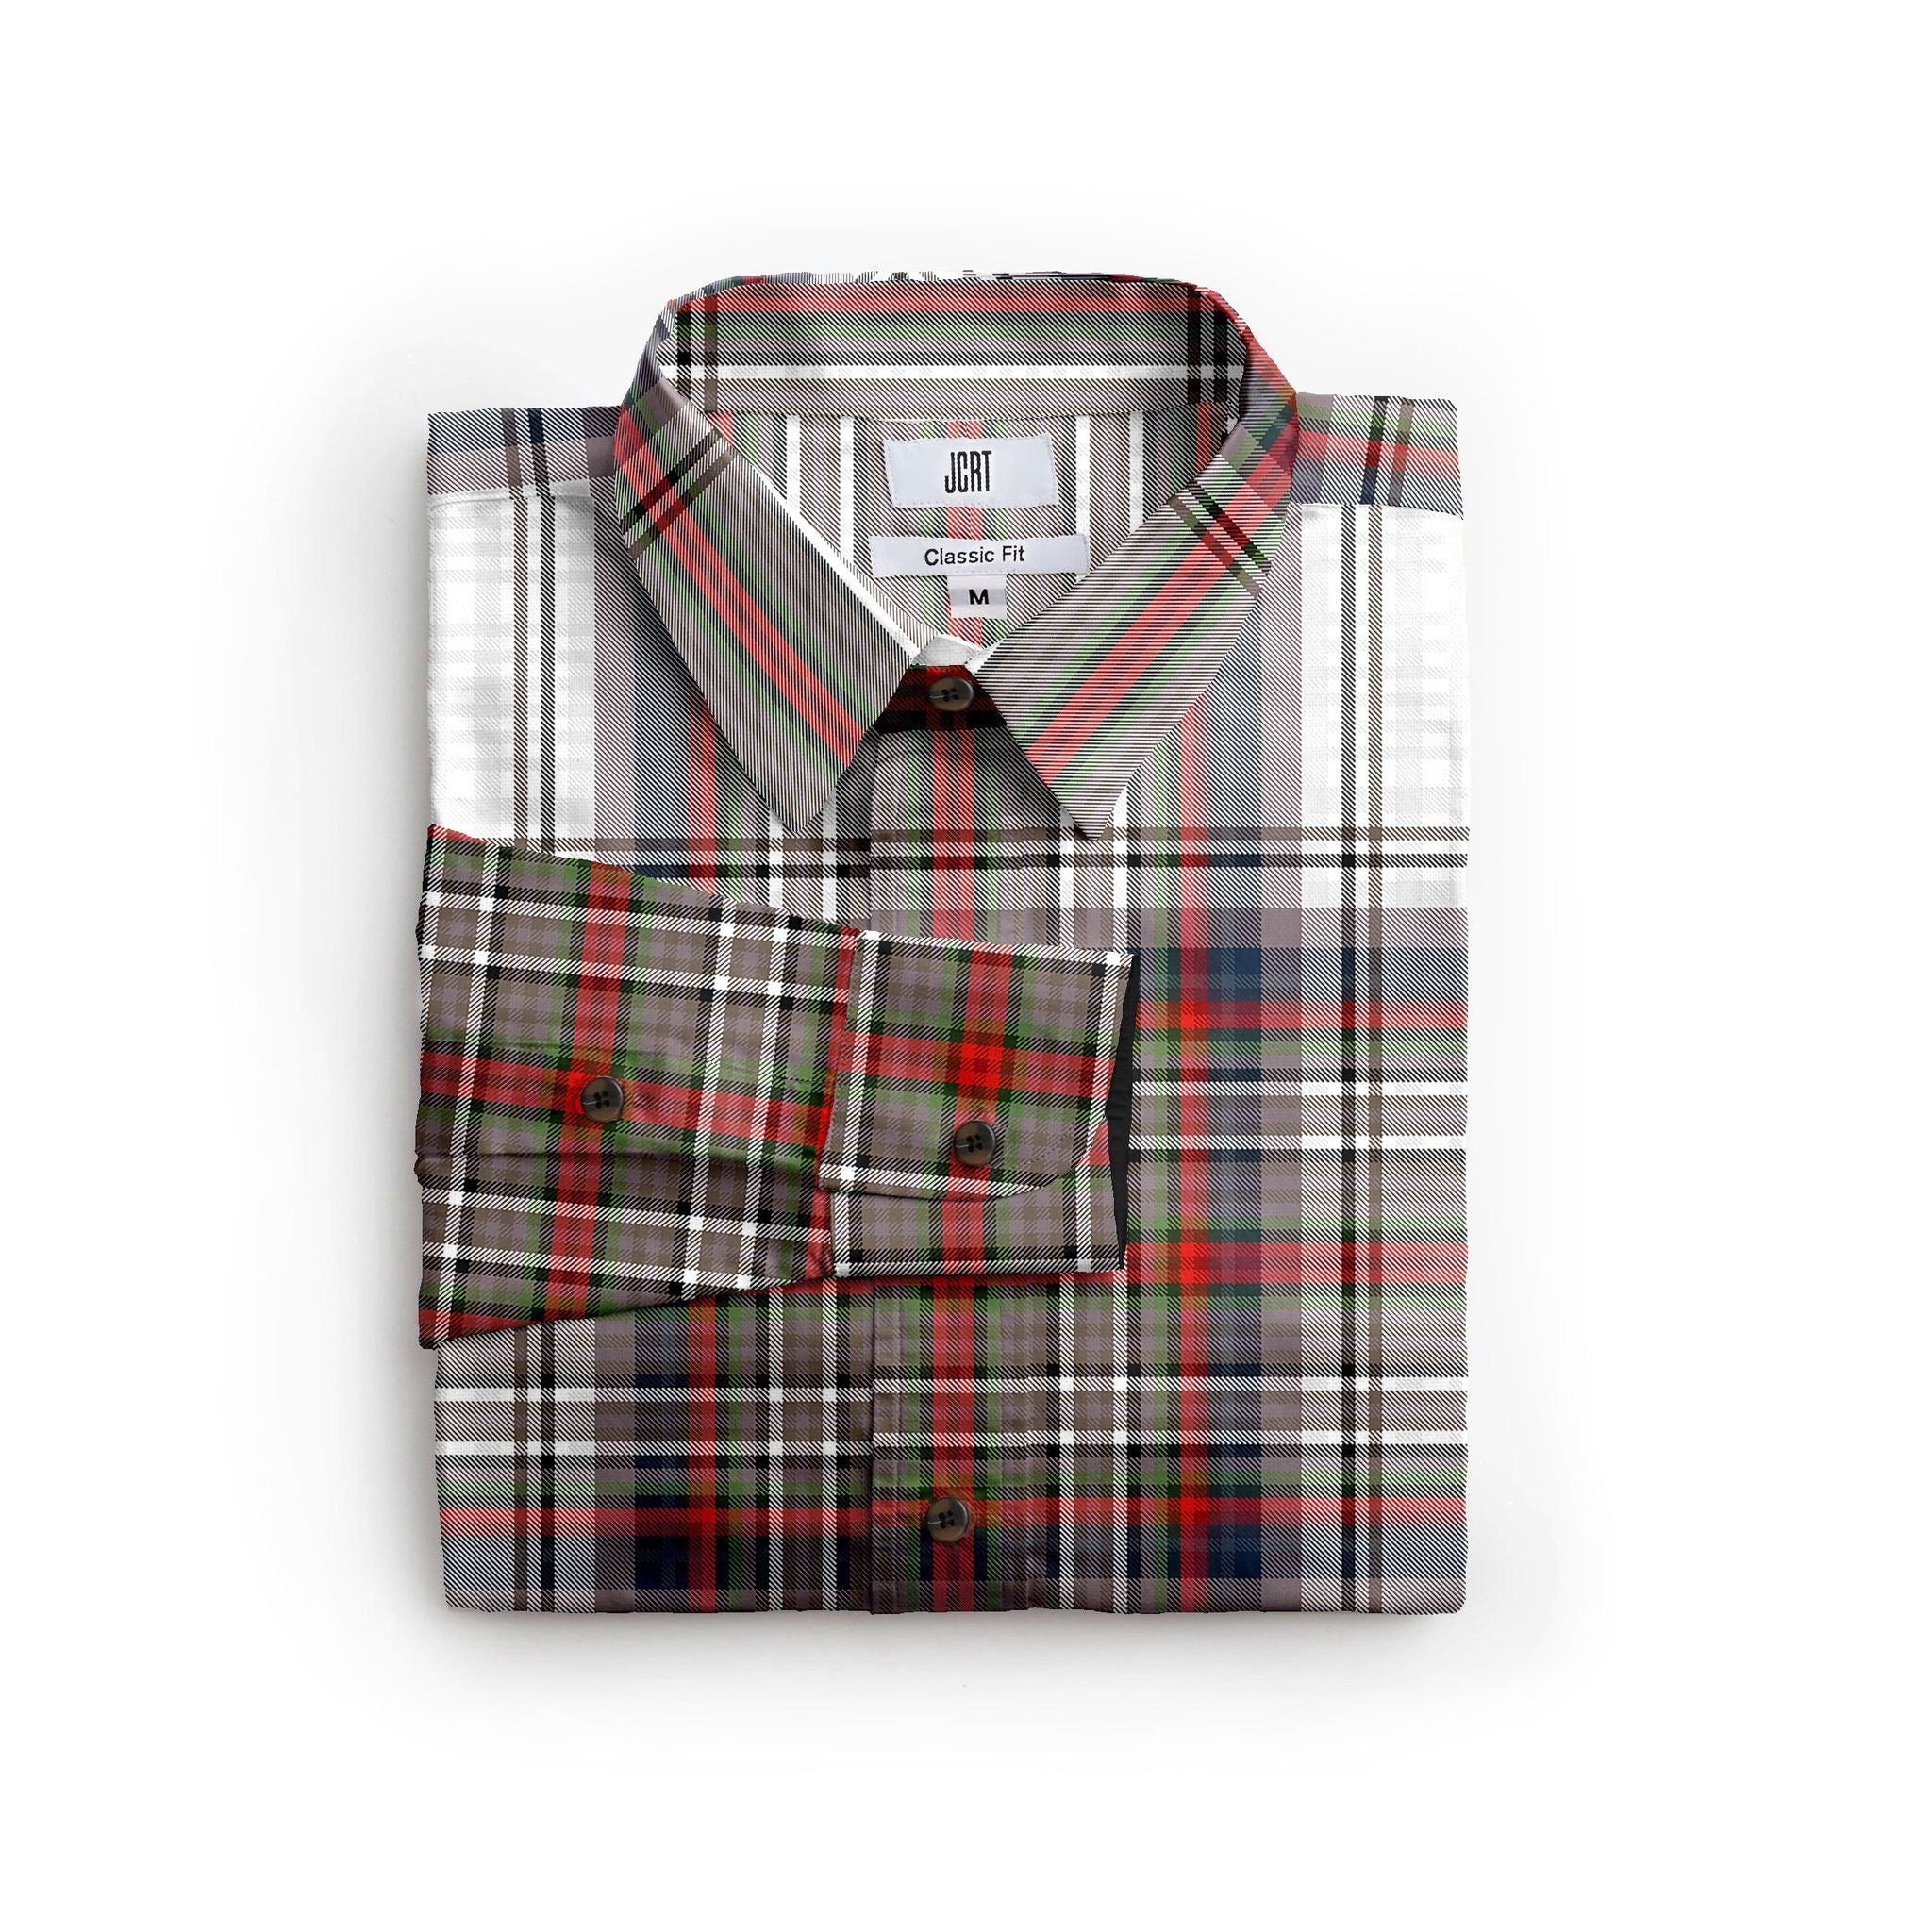 The Behaviour Plaid Long Sleeve Shirt